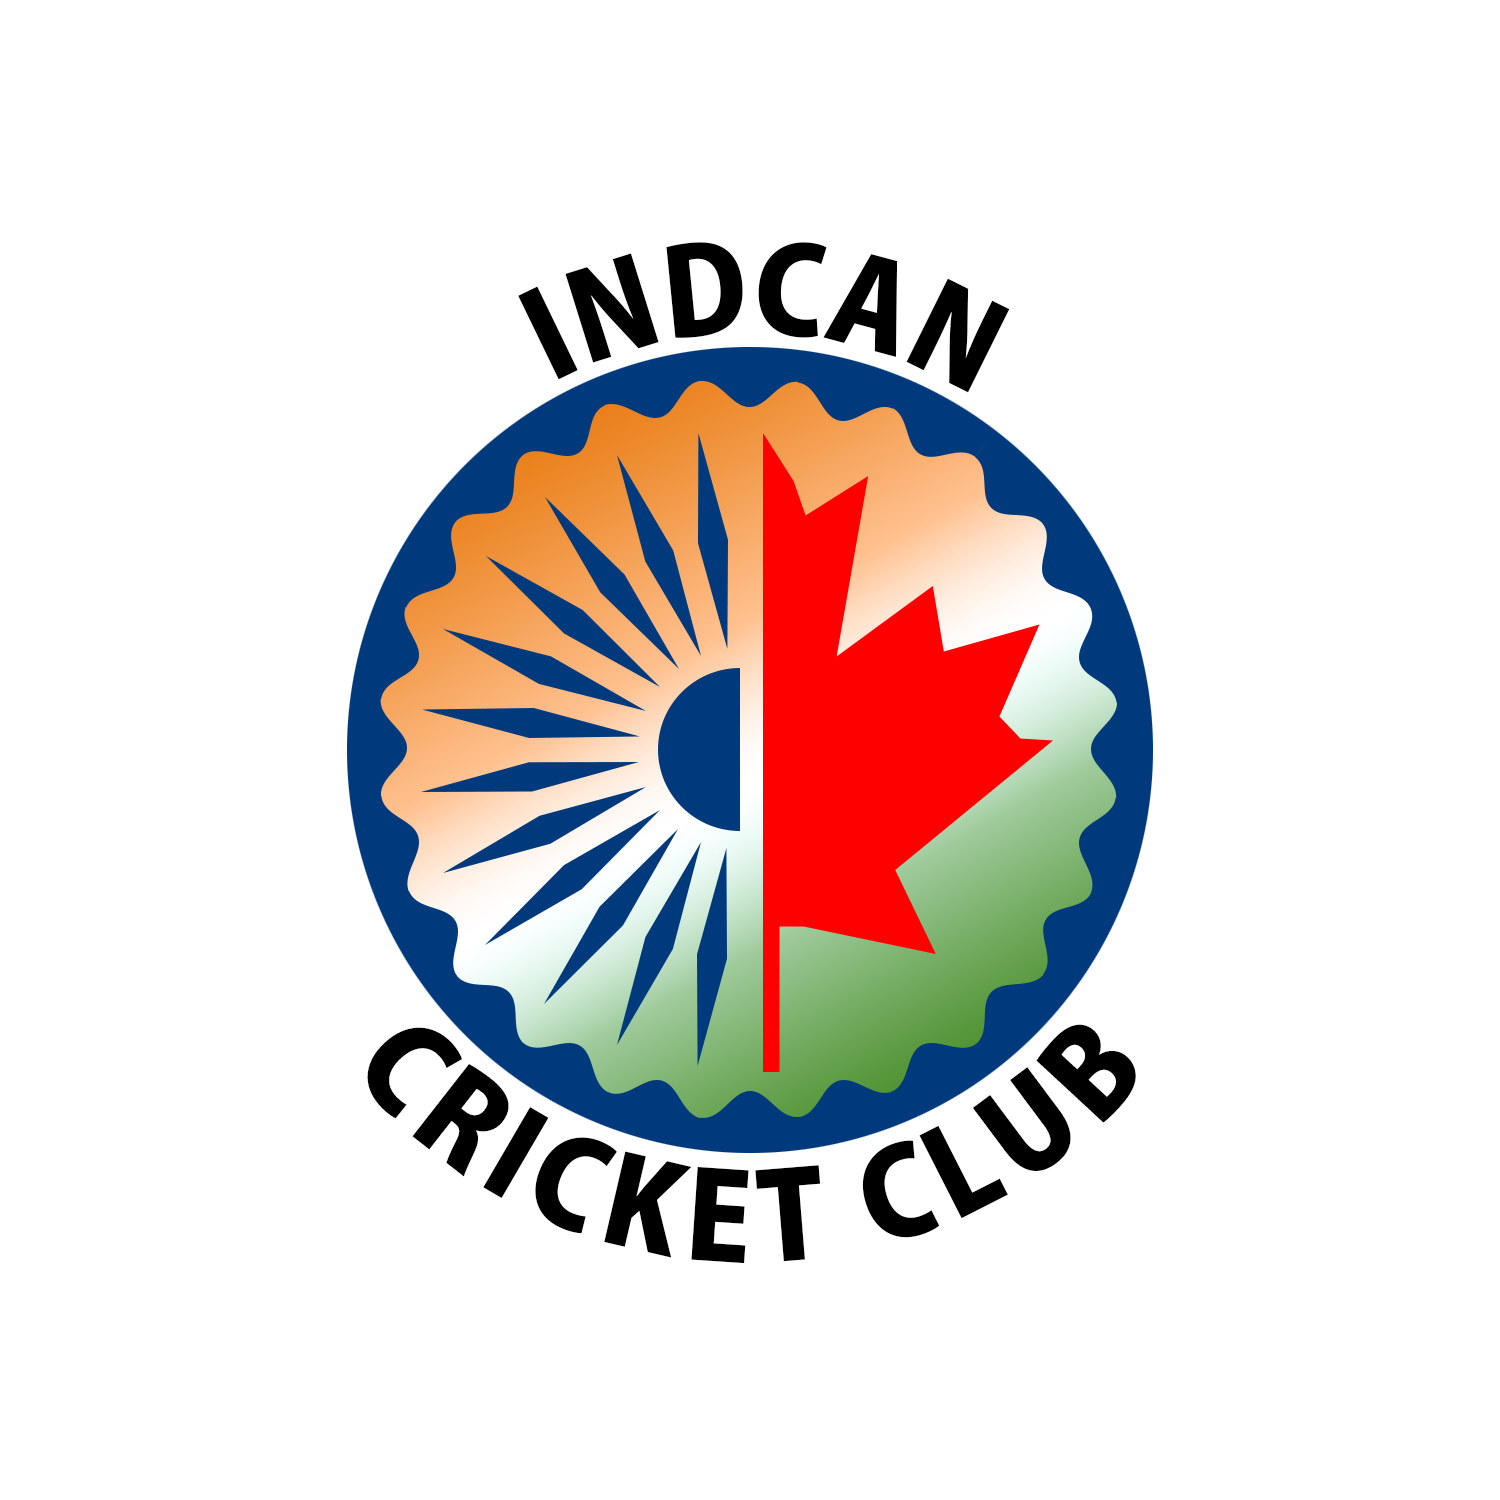 Indcan Cricket Club